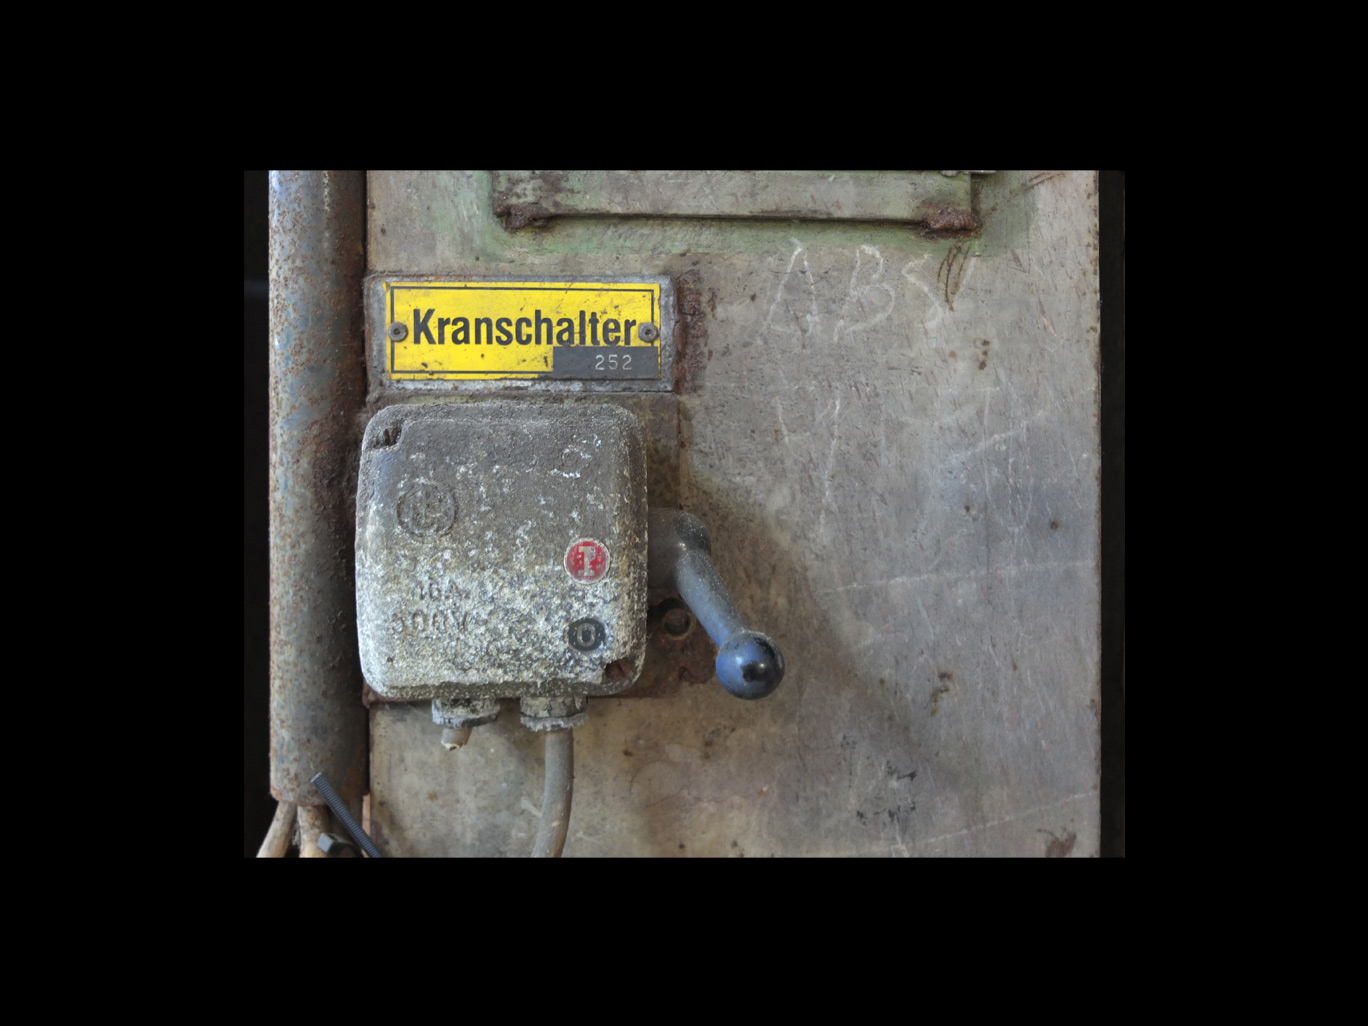 kranschalter-signs-of-old-times